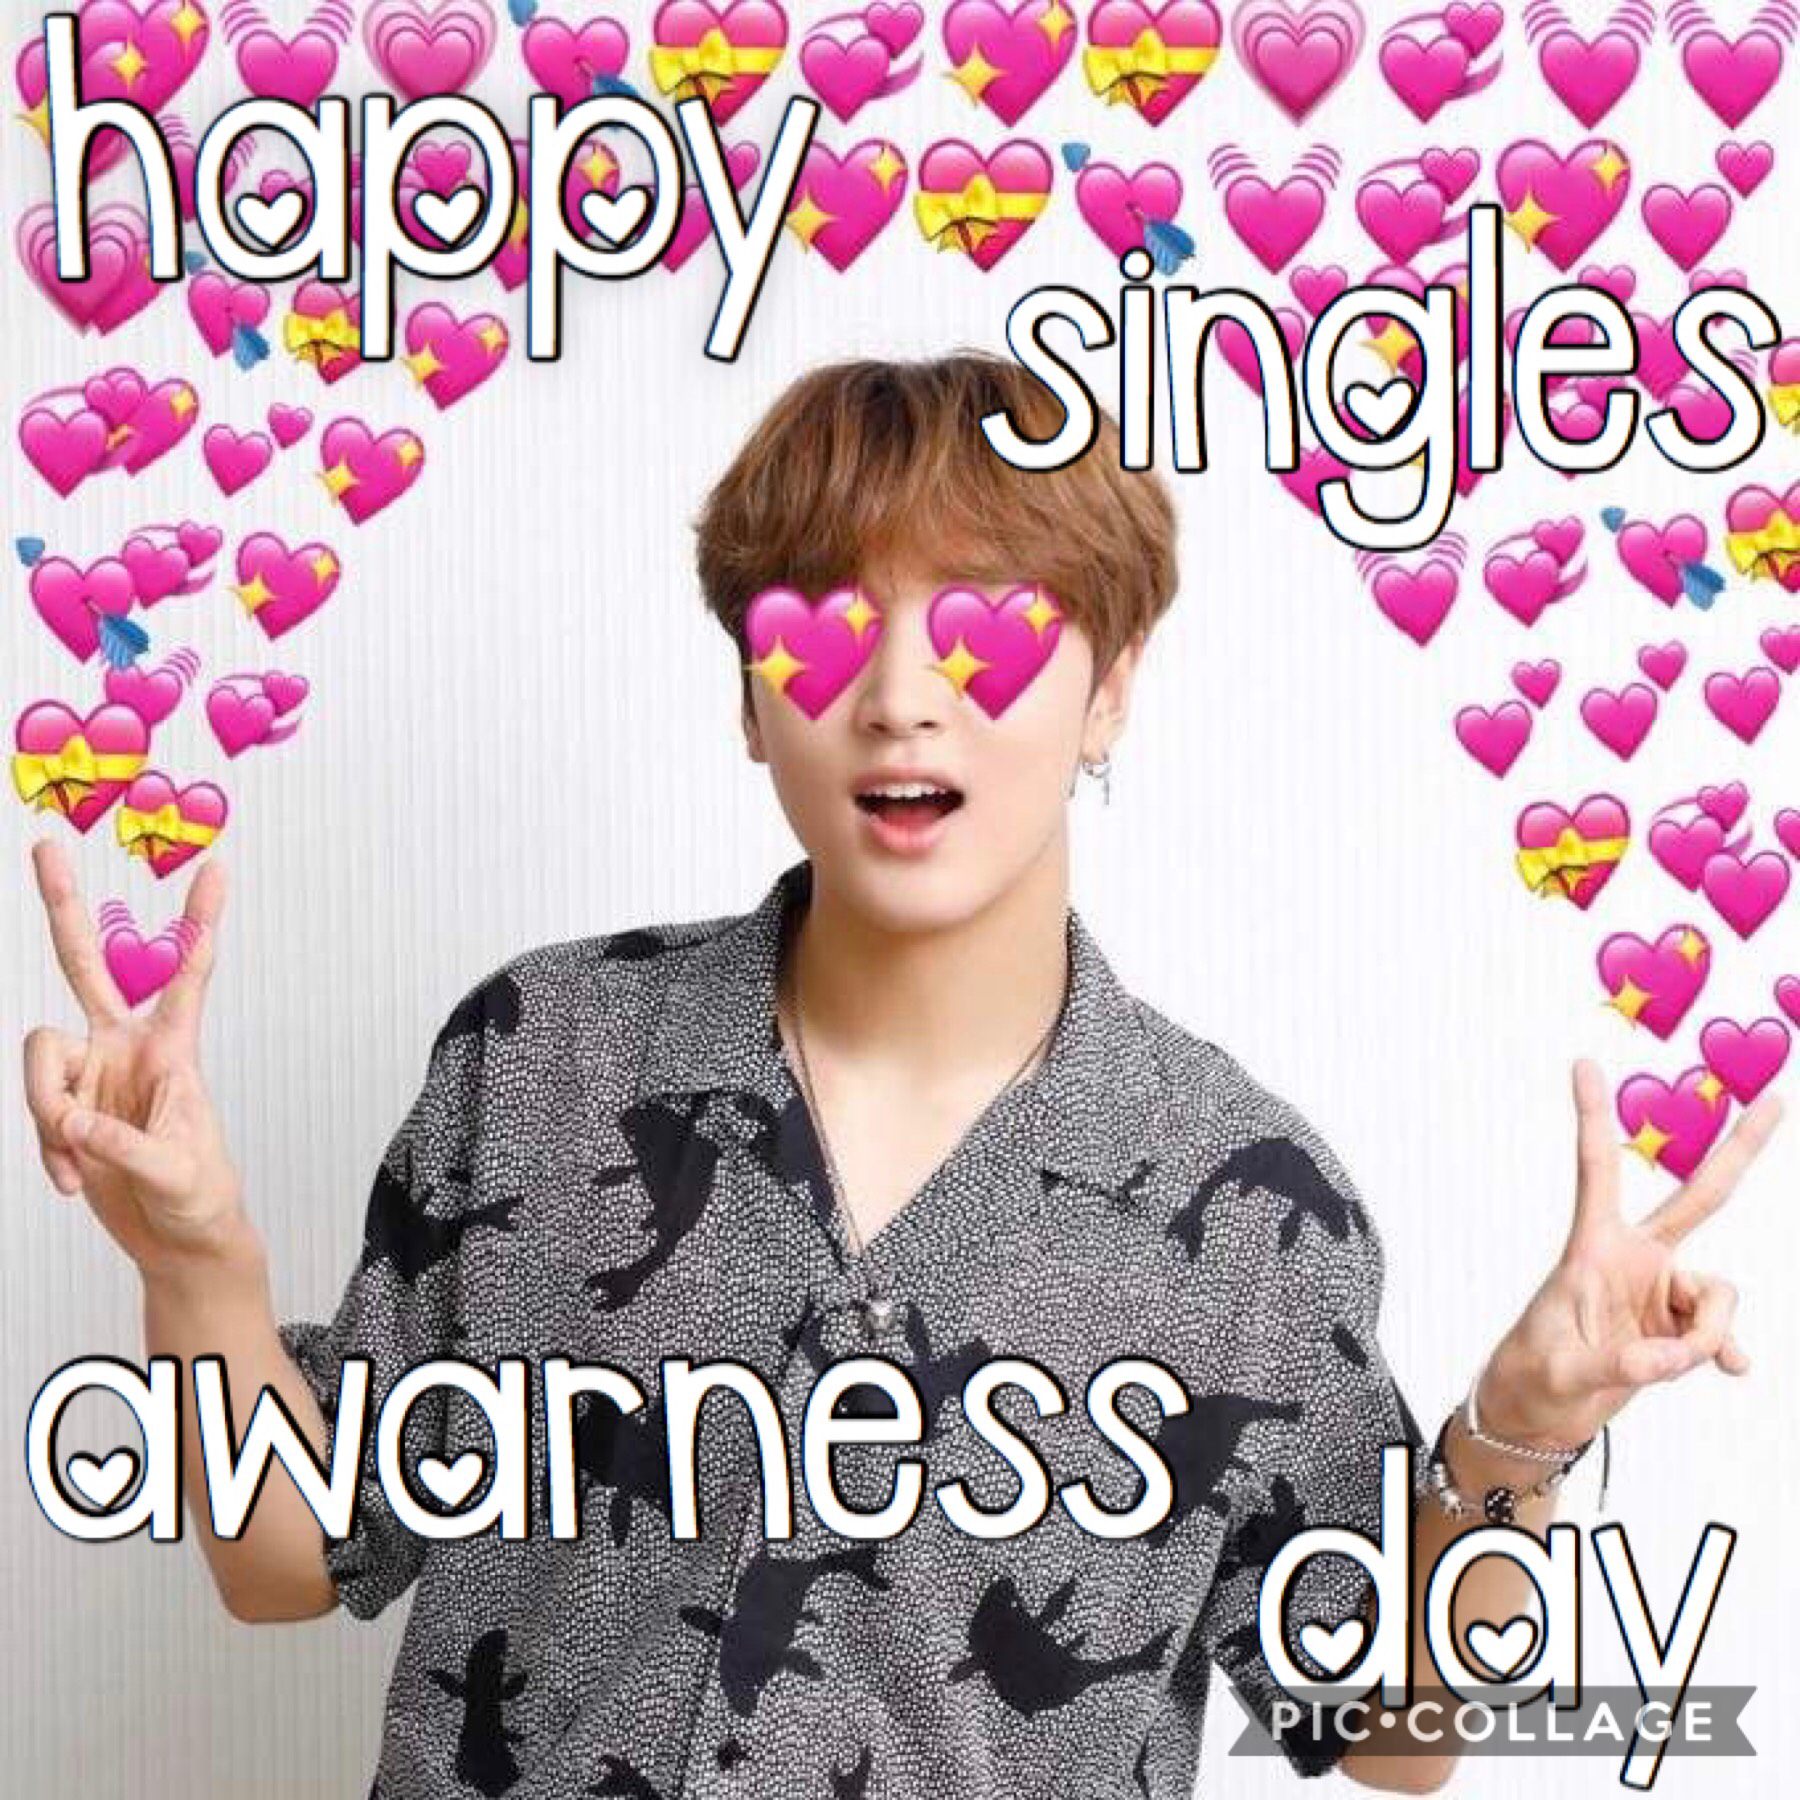 ∿♡HAPPY VALENTINE'S DAY♡∿ ☆☆☆  qotd: whoes ur valentine or dream valentine?  aotd: uhm ofc haechan... BACK OFF and i'm not fantasizing or being possessive... i'm just honest 😉😤